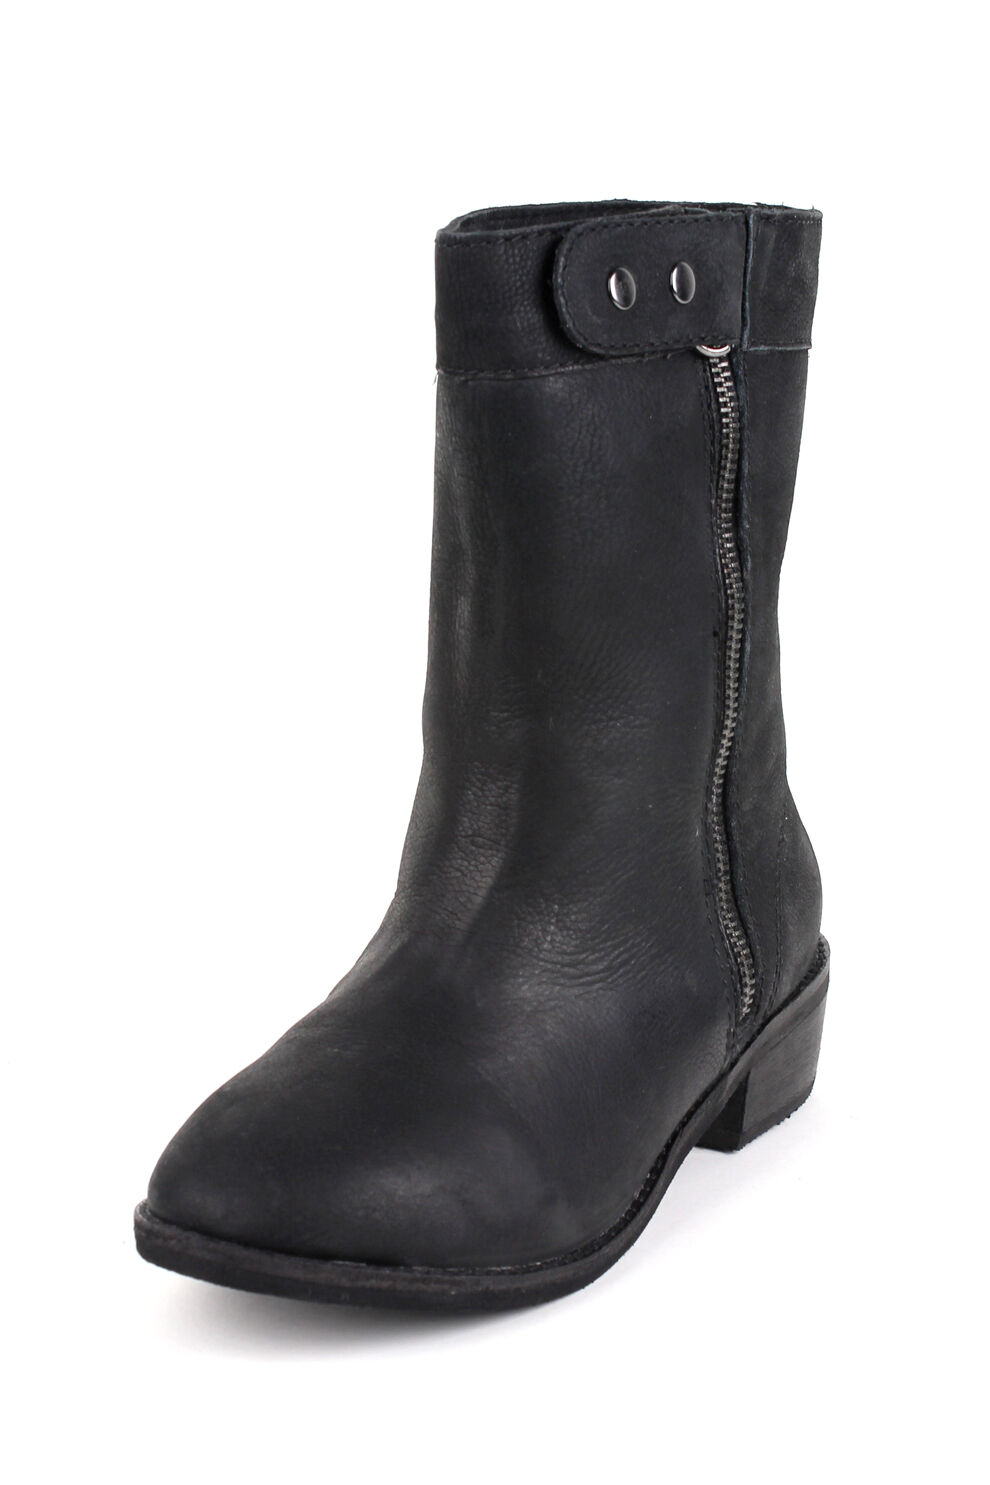 Joe's Jeans Groovy Ankle High Boot 295 Black Leather Shoes NEW